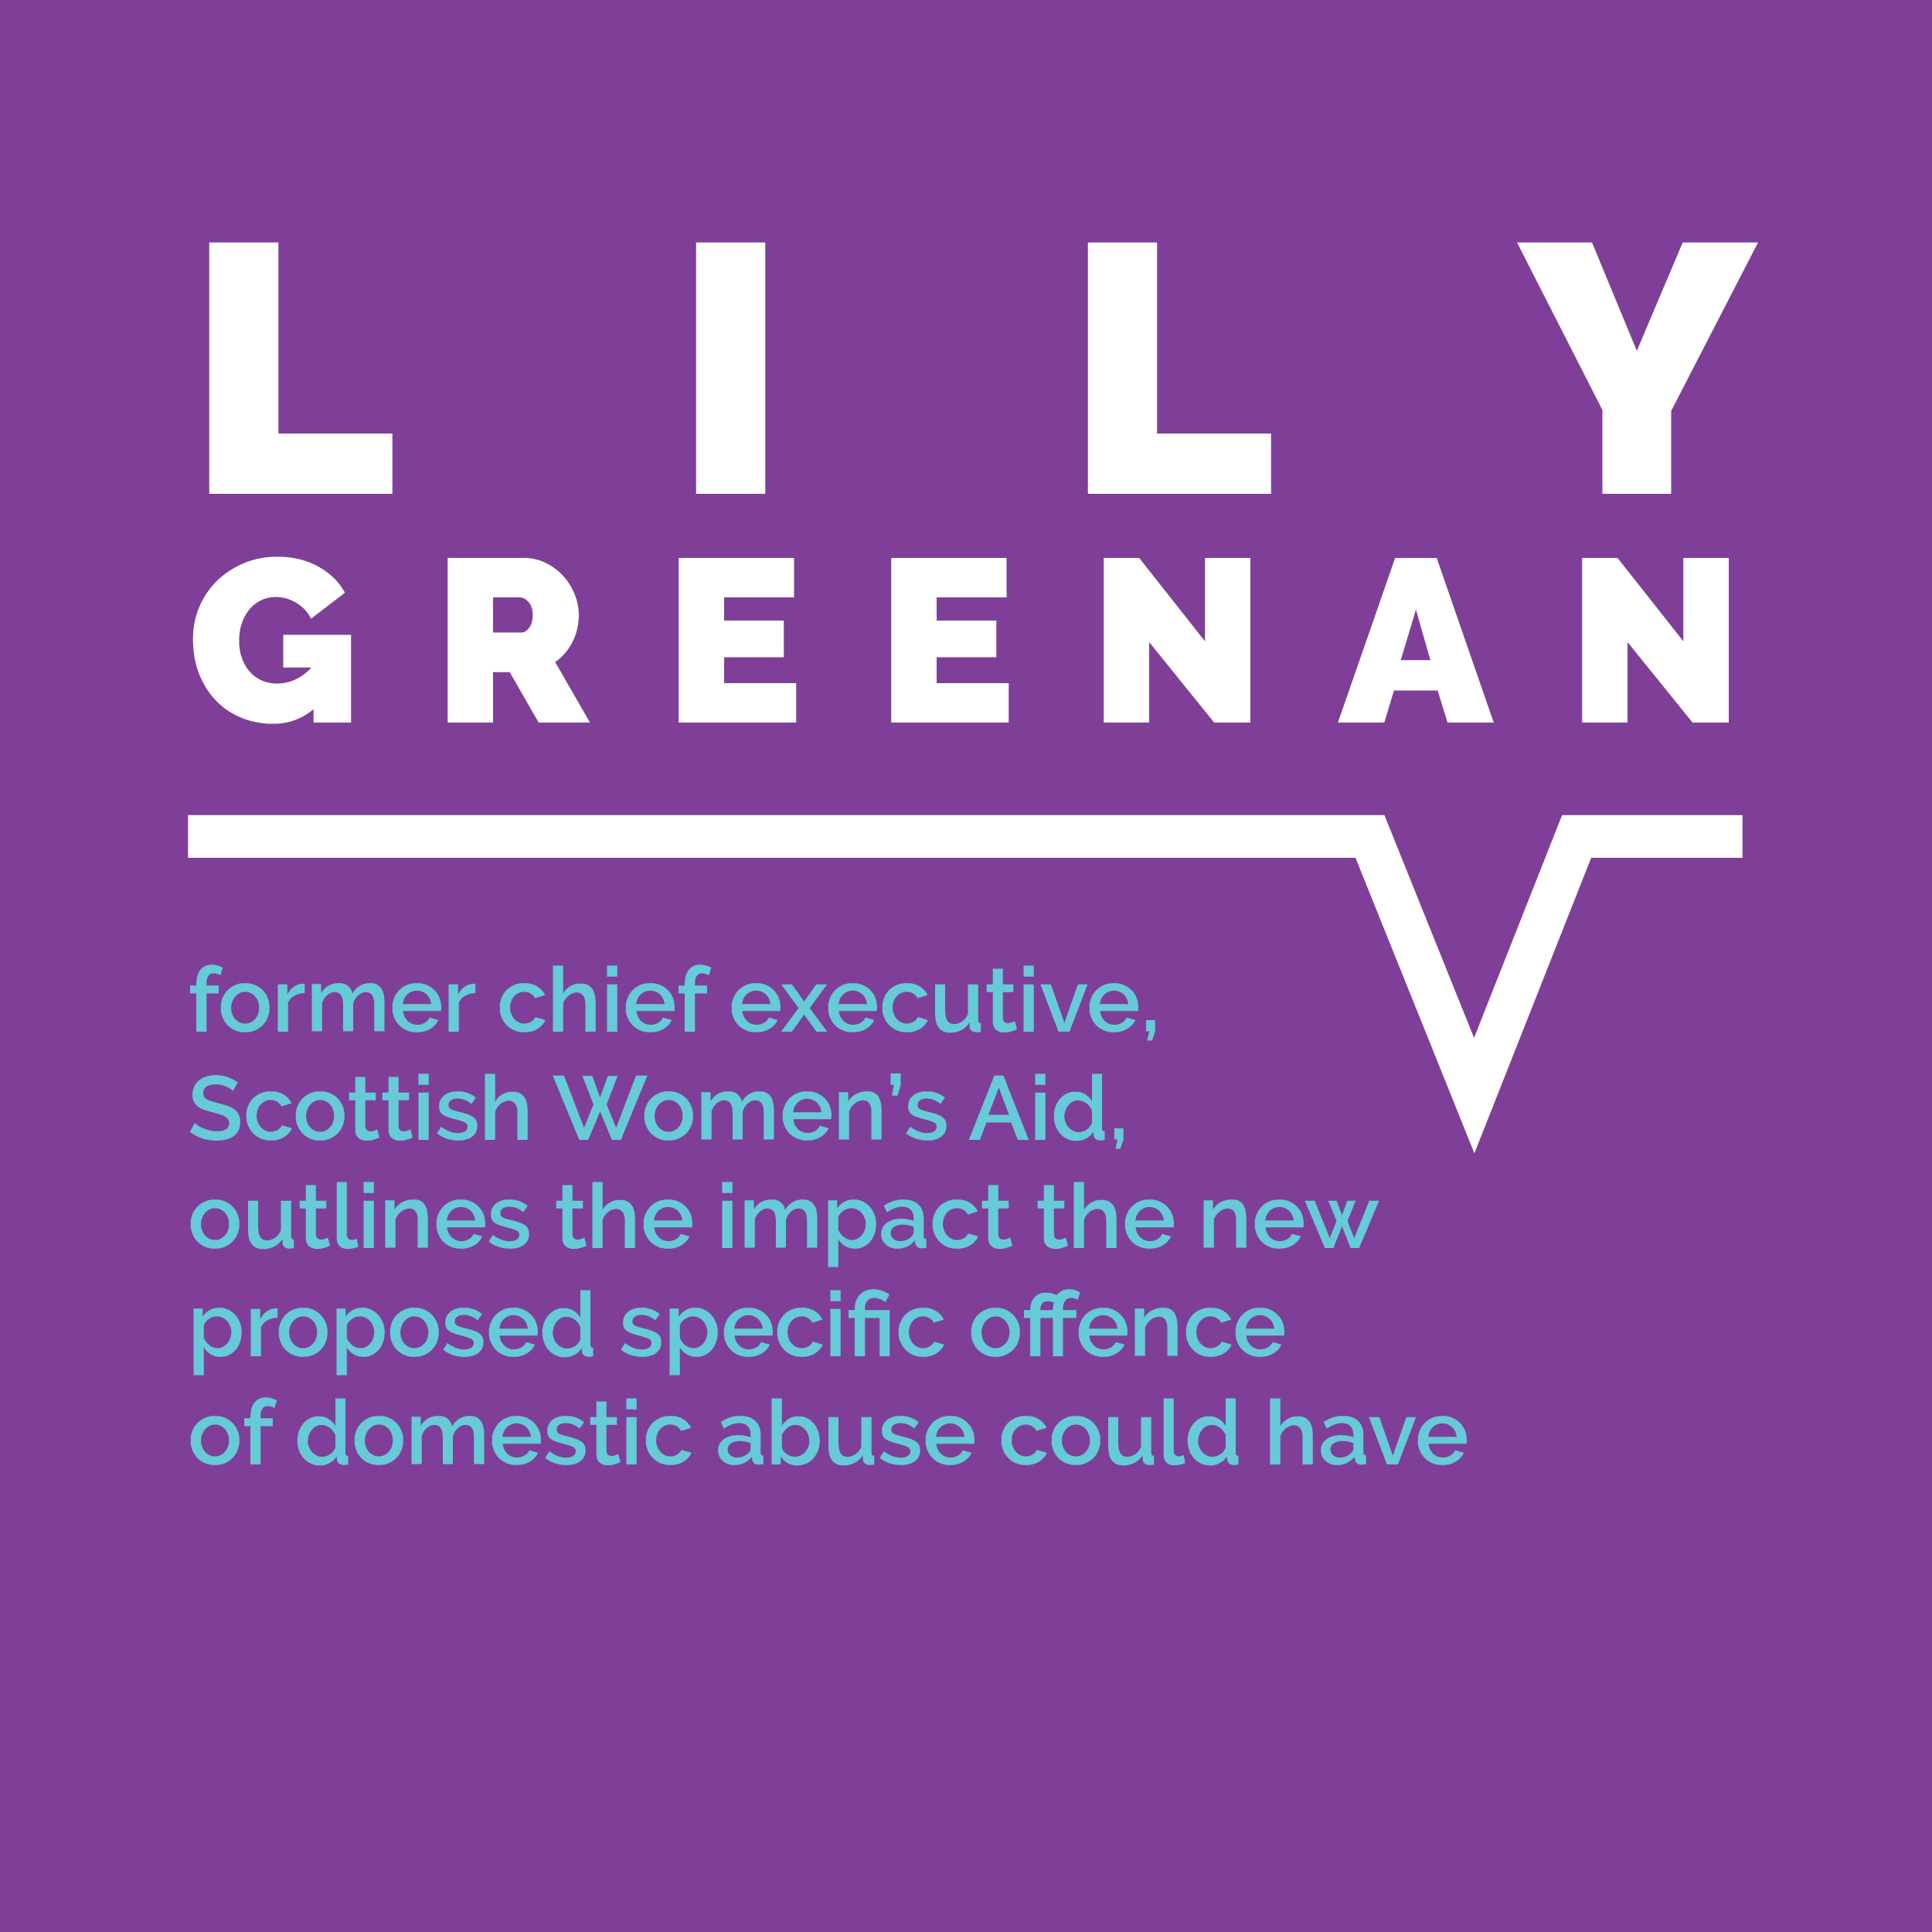 Lily Greenan, former chief executive, Scotish Women's Aid, outllines the impact the new proposed specific offence of domestic abuse could have